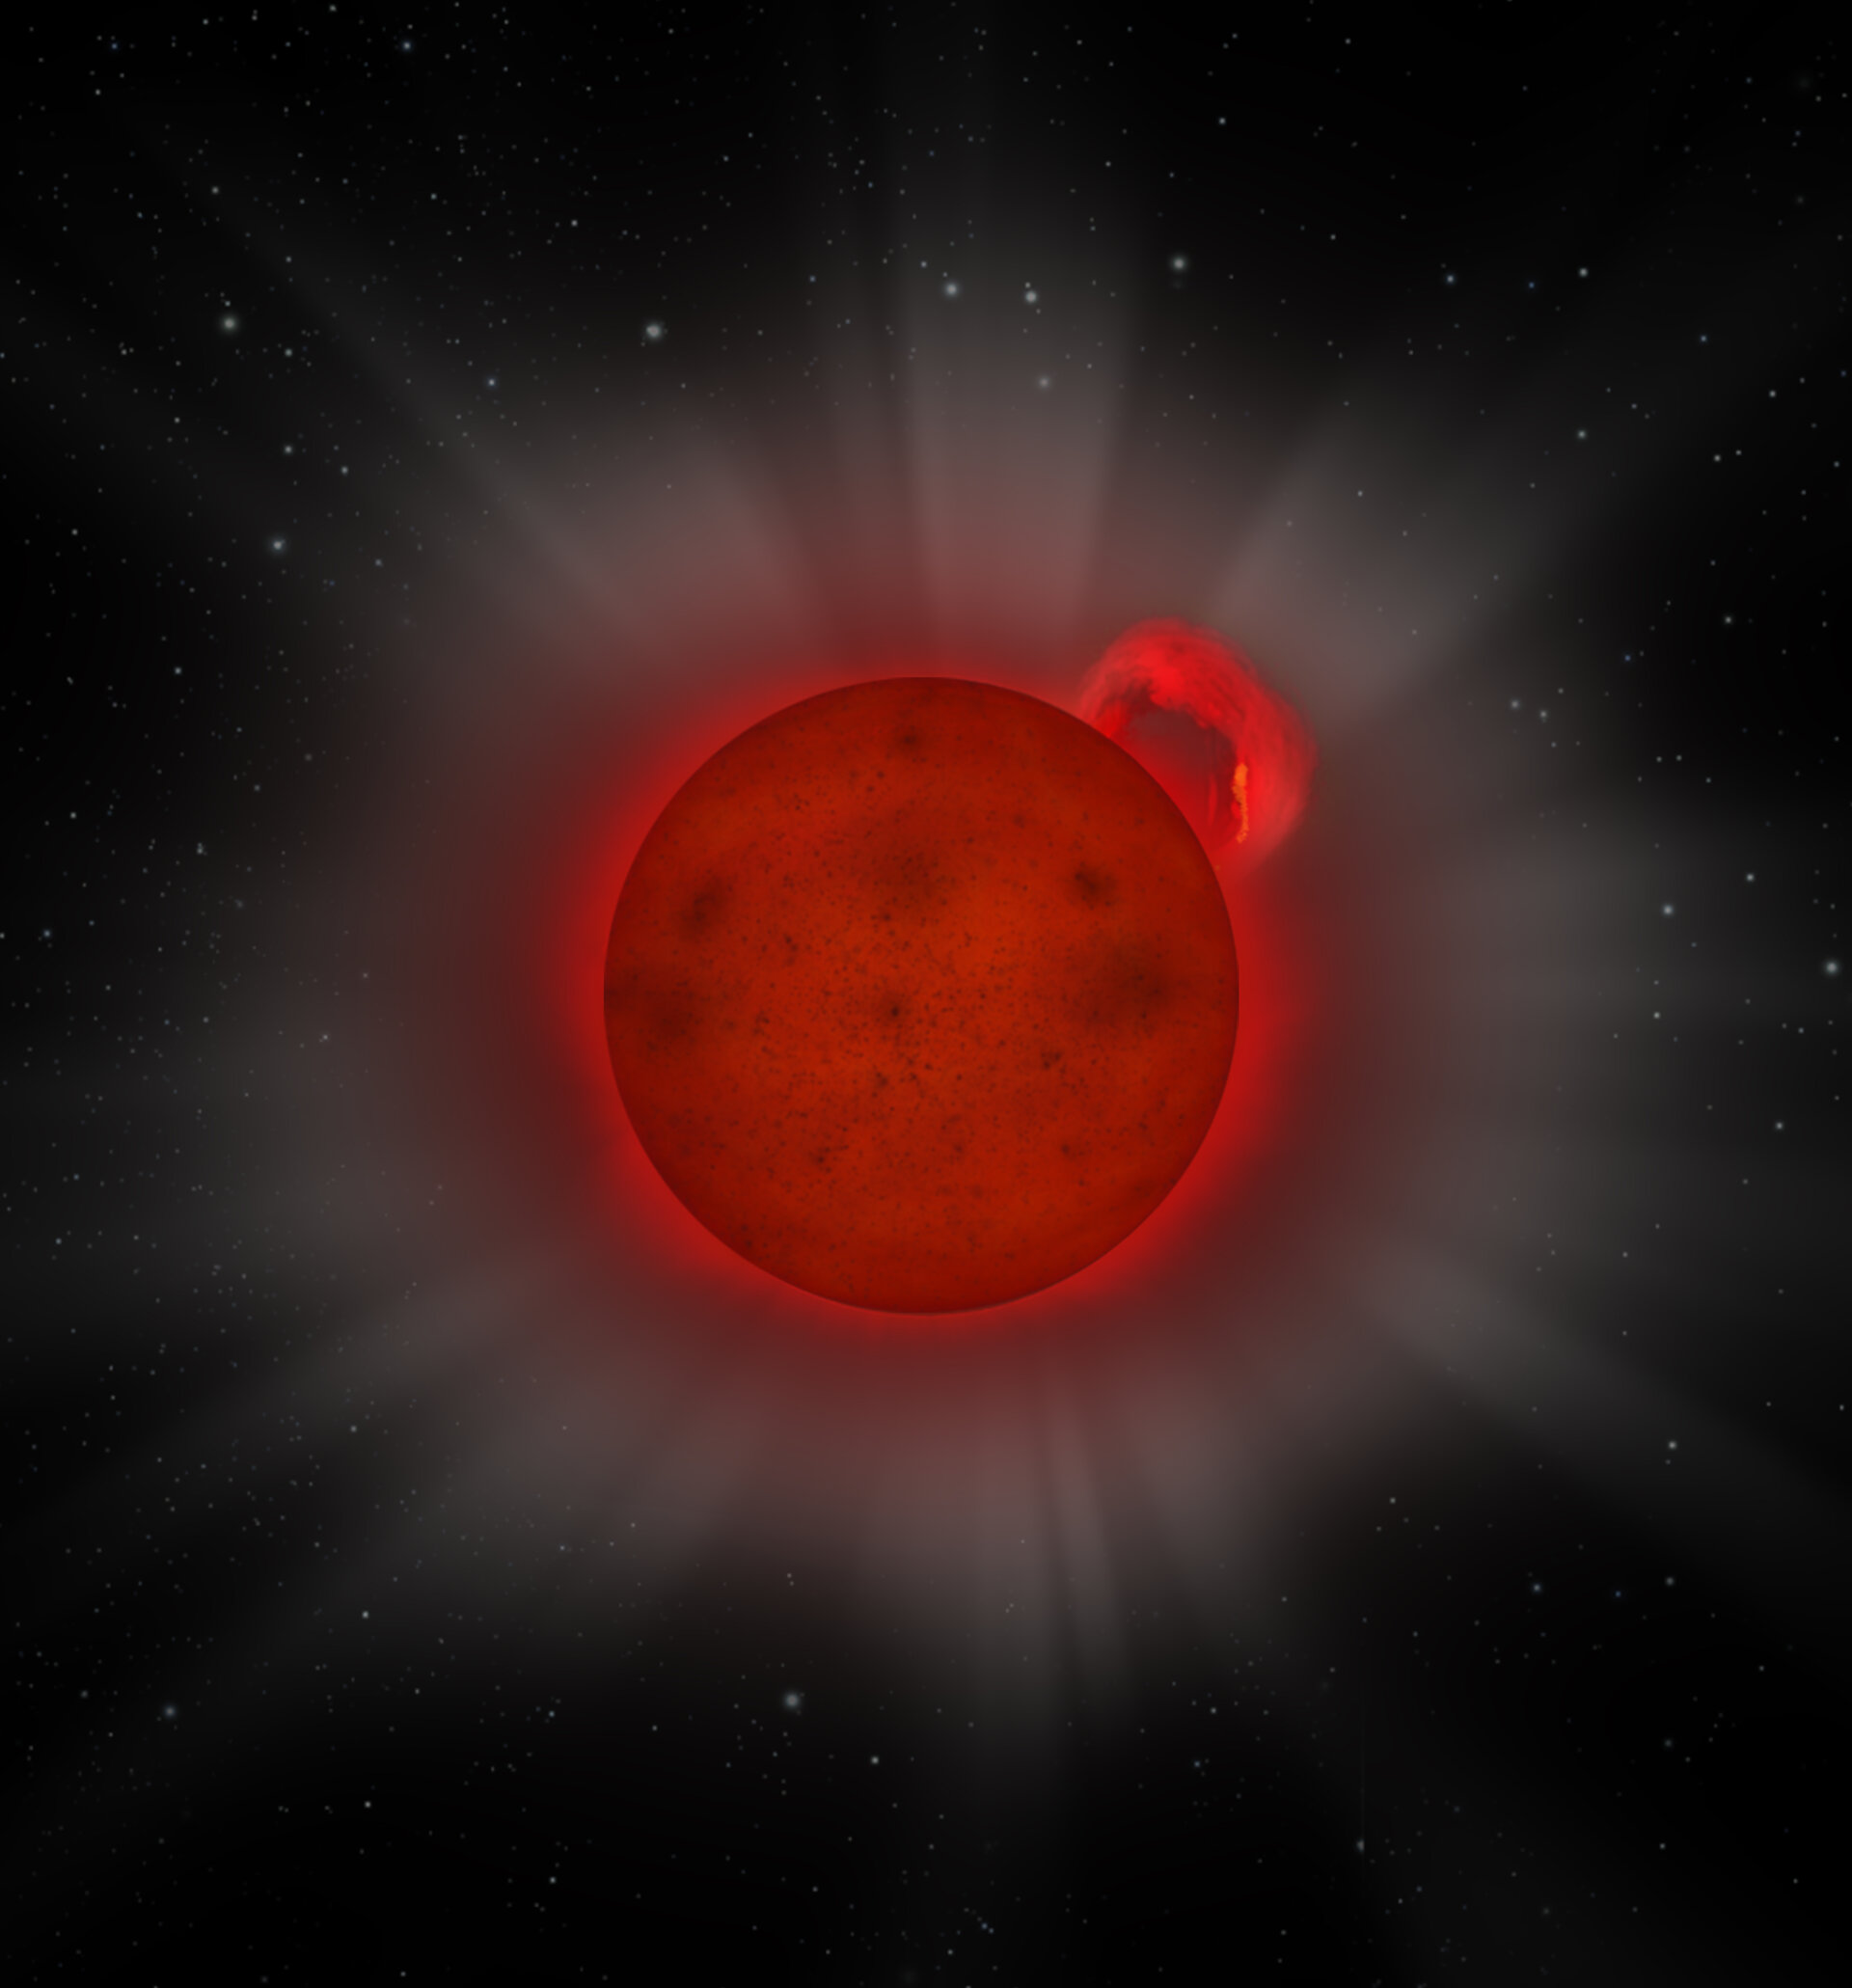 Artist's impression of the giant flare detected on the L dwarf J0331-27